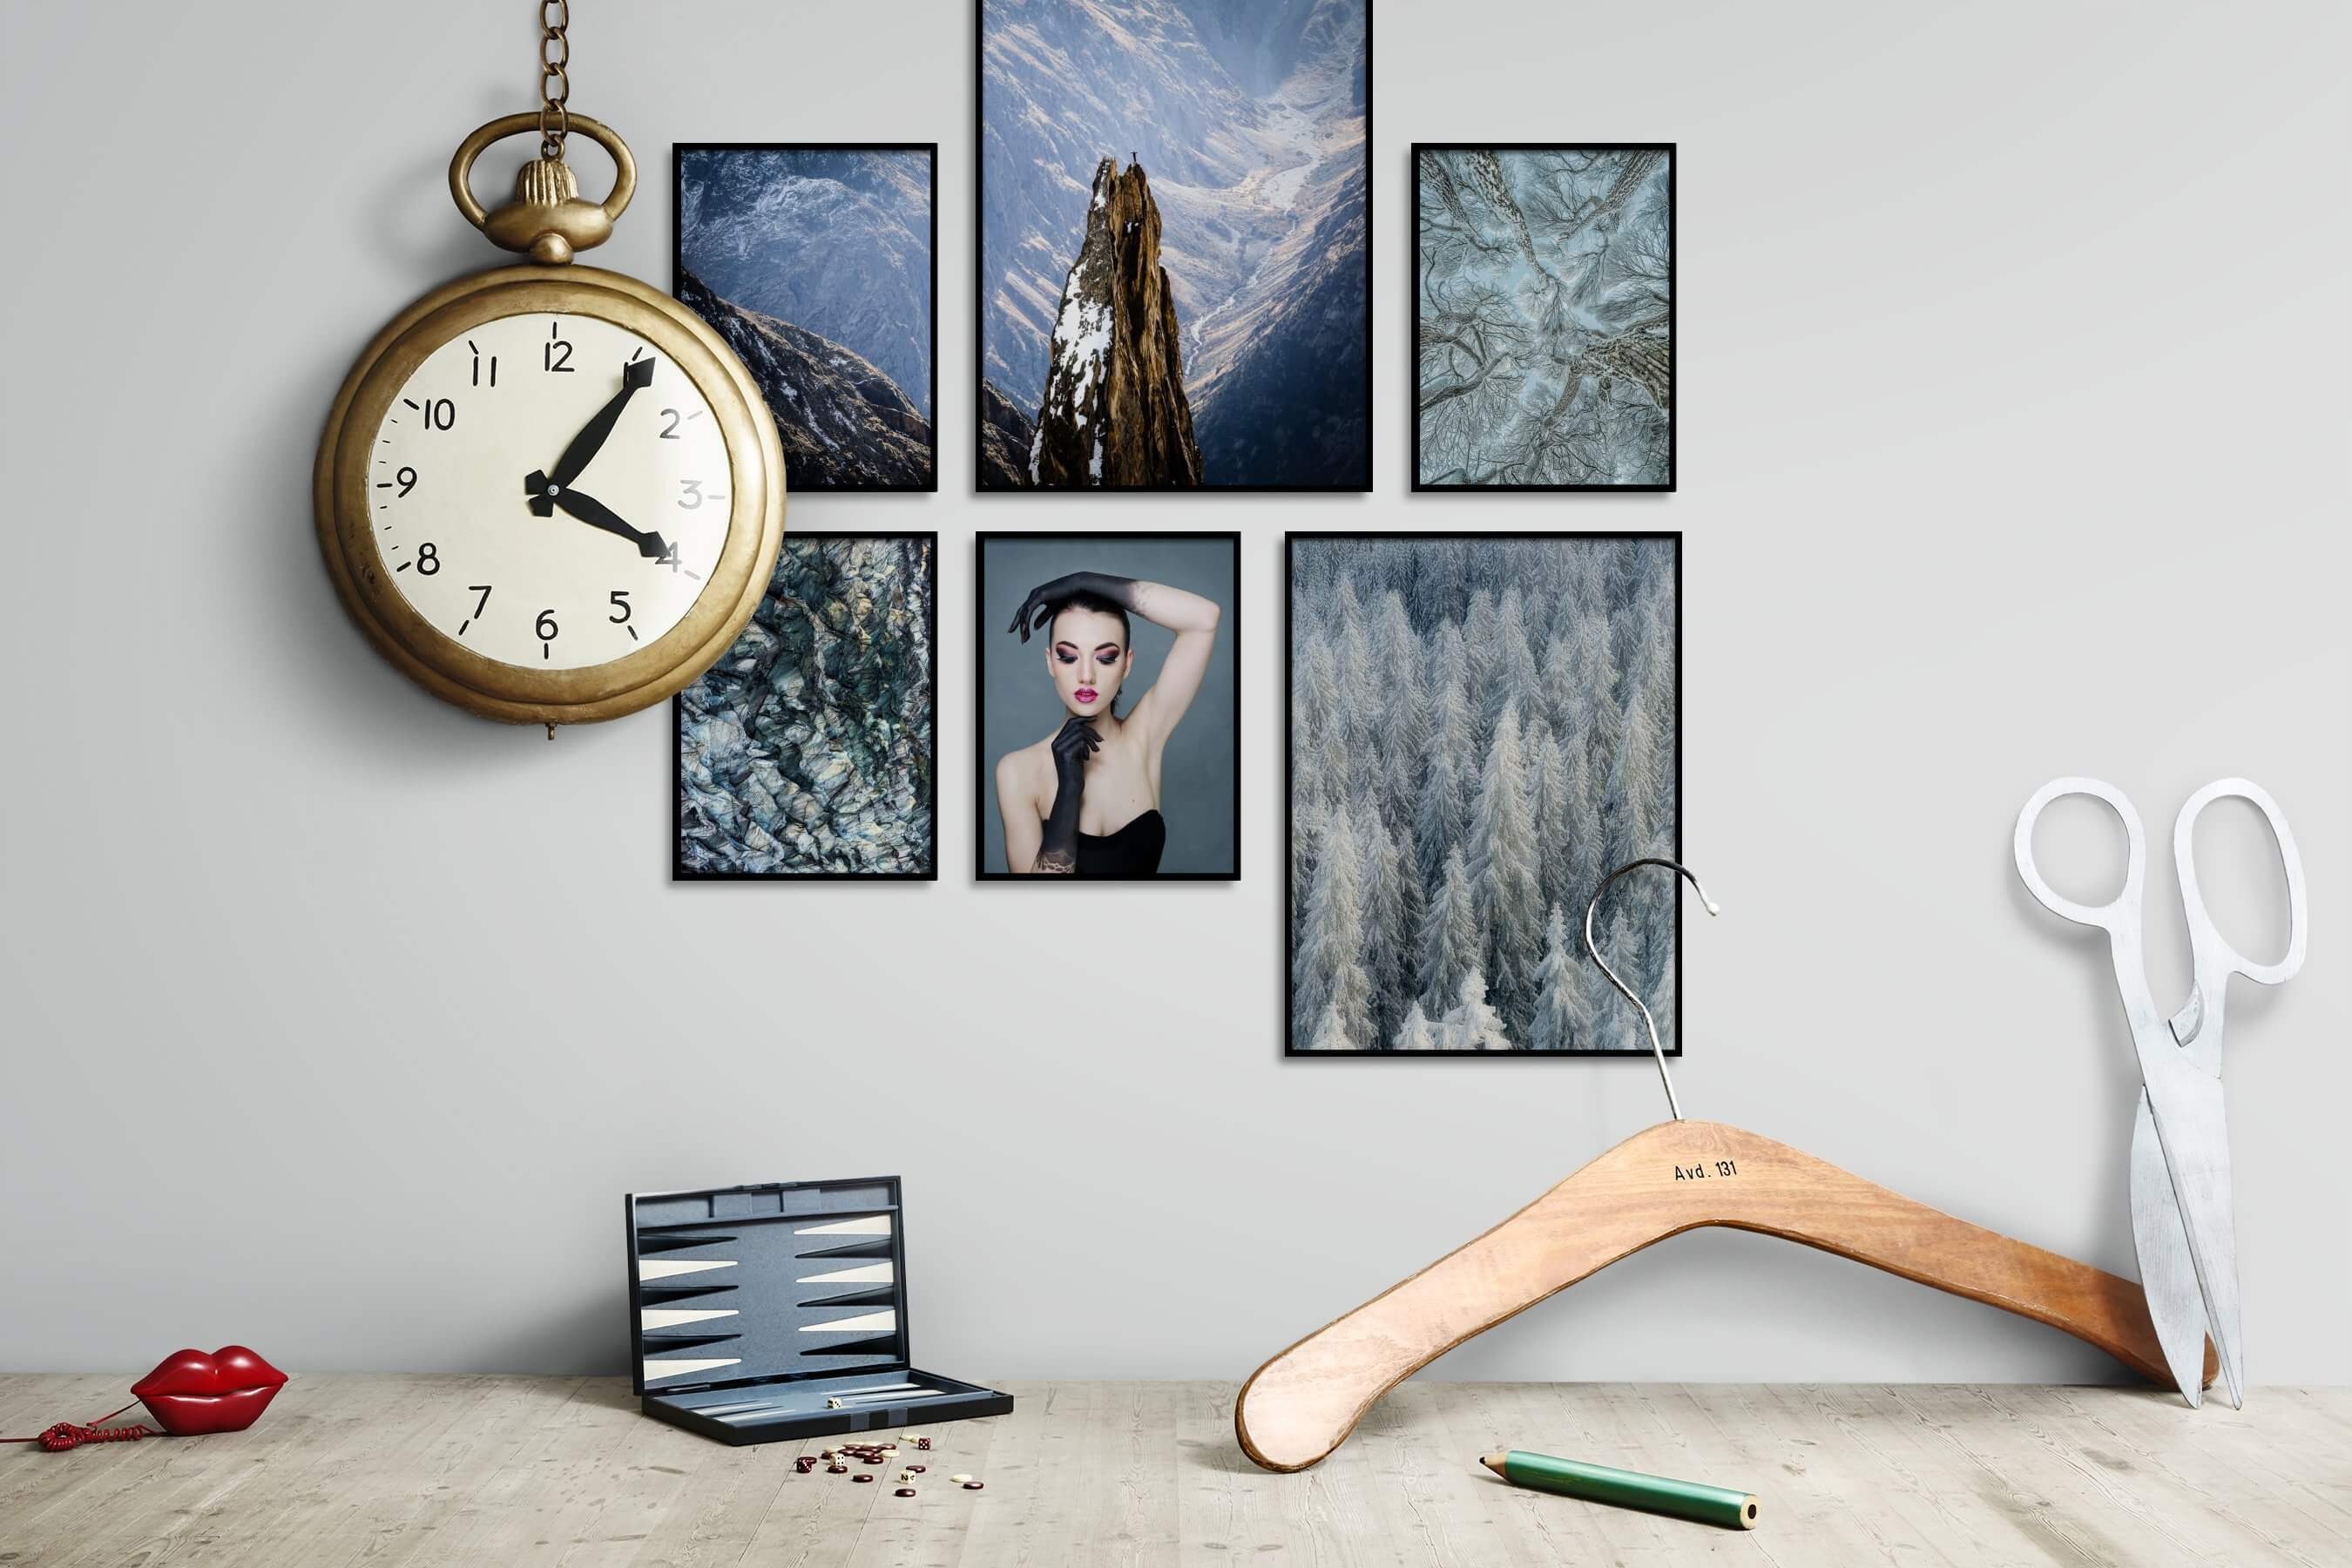 Gallery wall idea with six framed pictures arranged on a wall depicting For the Moderate, Nature, Mindfulness, For the Maximalist, and Fashion & Beauty